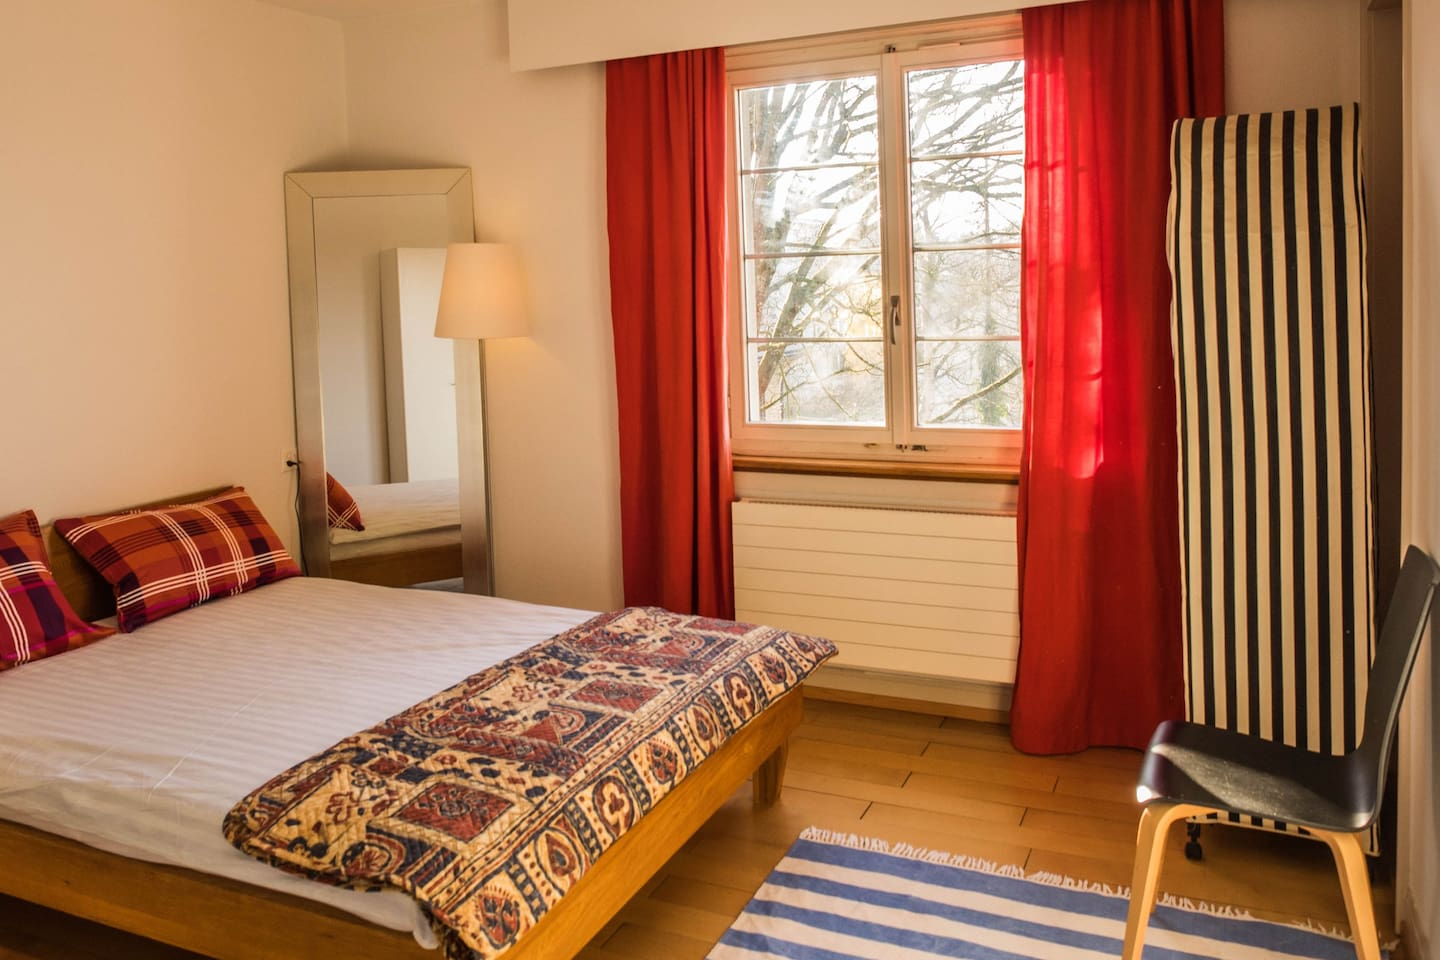 Bedroom with a queen-sized double bed (180-200).